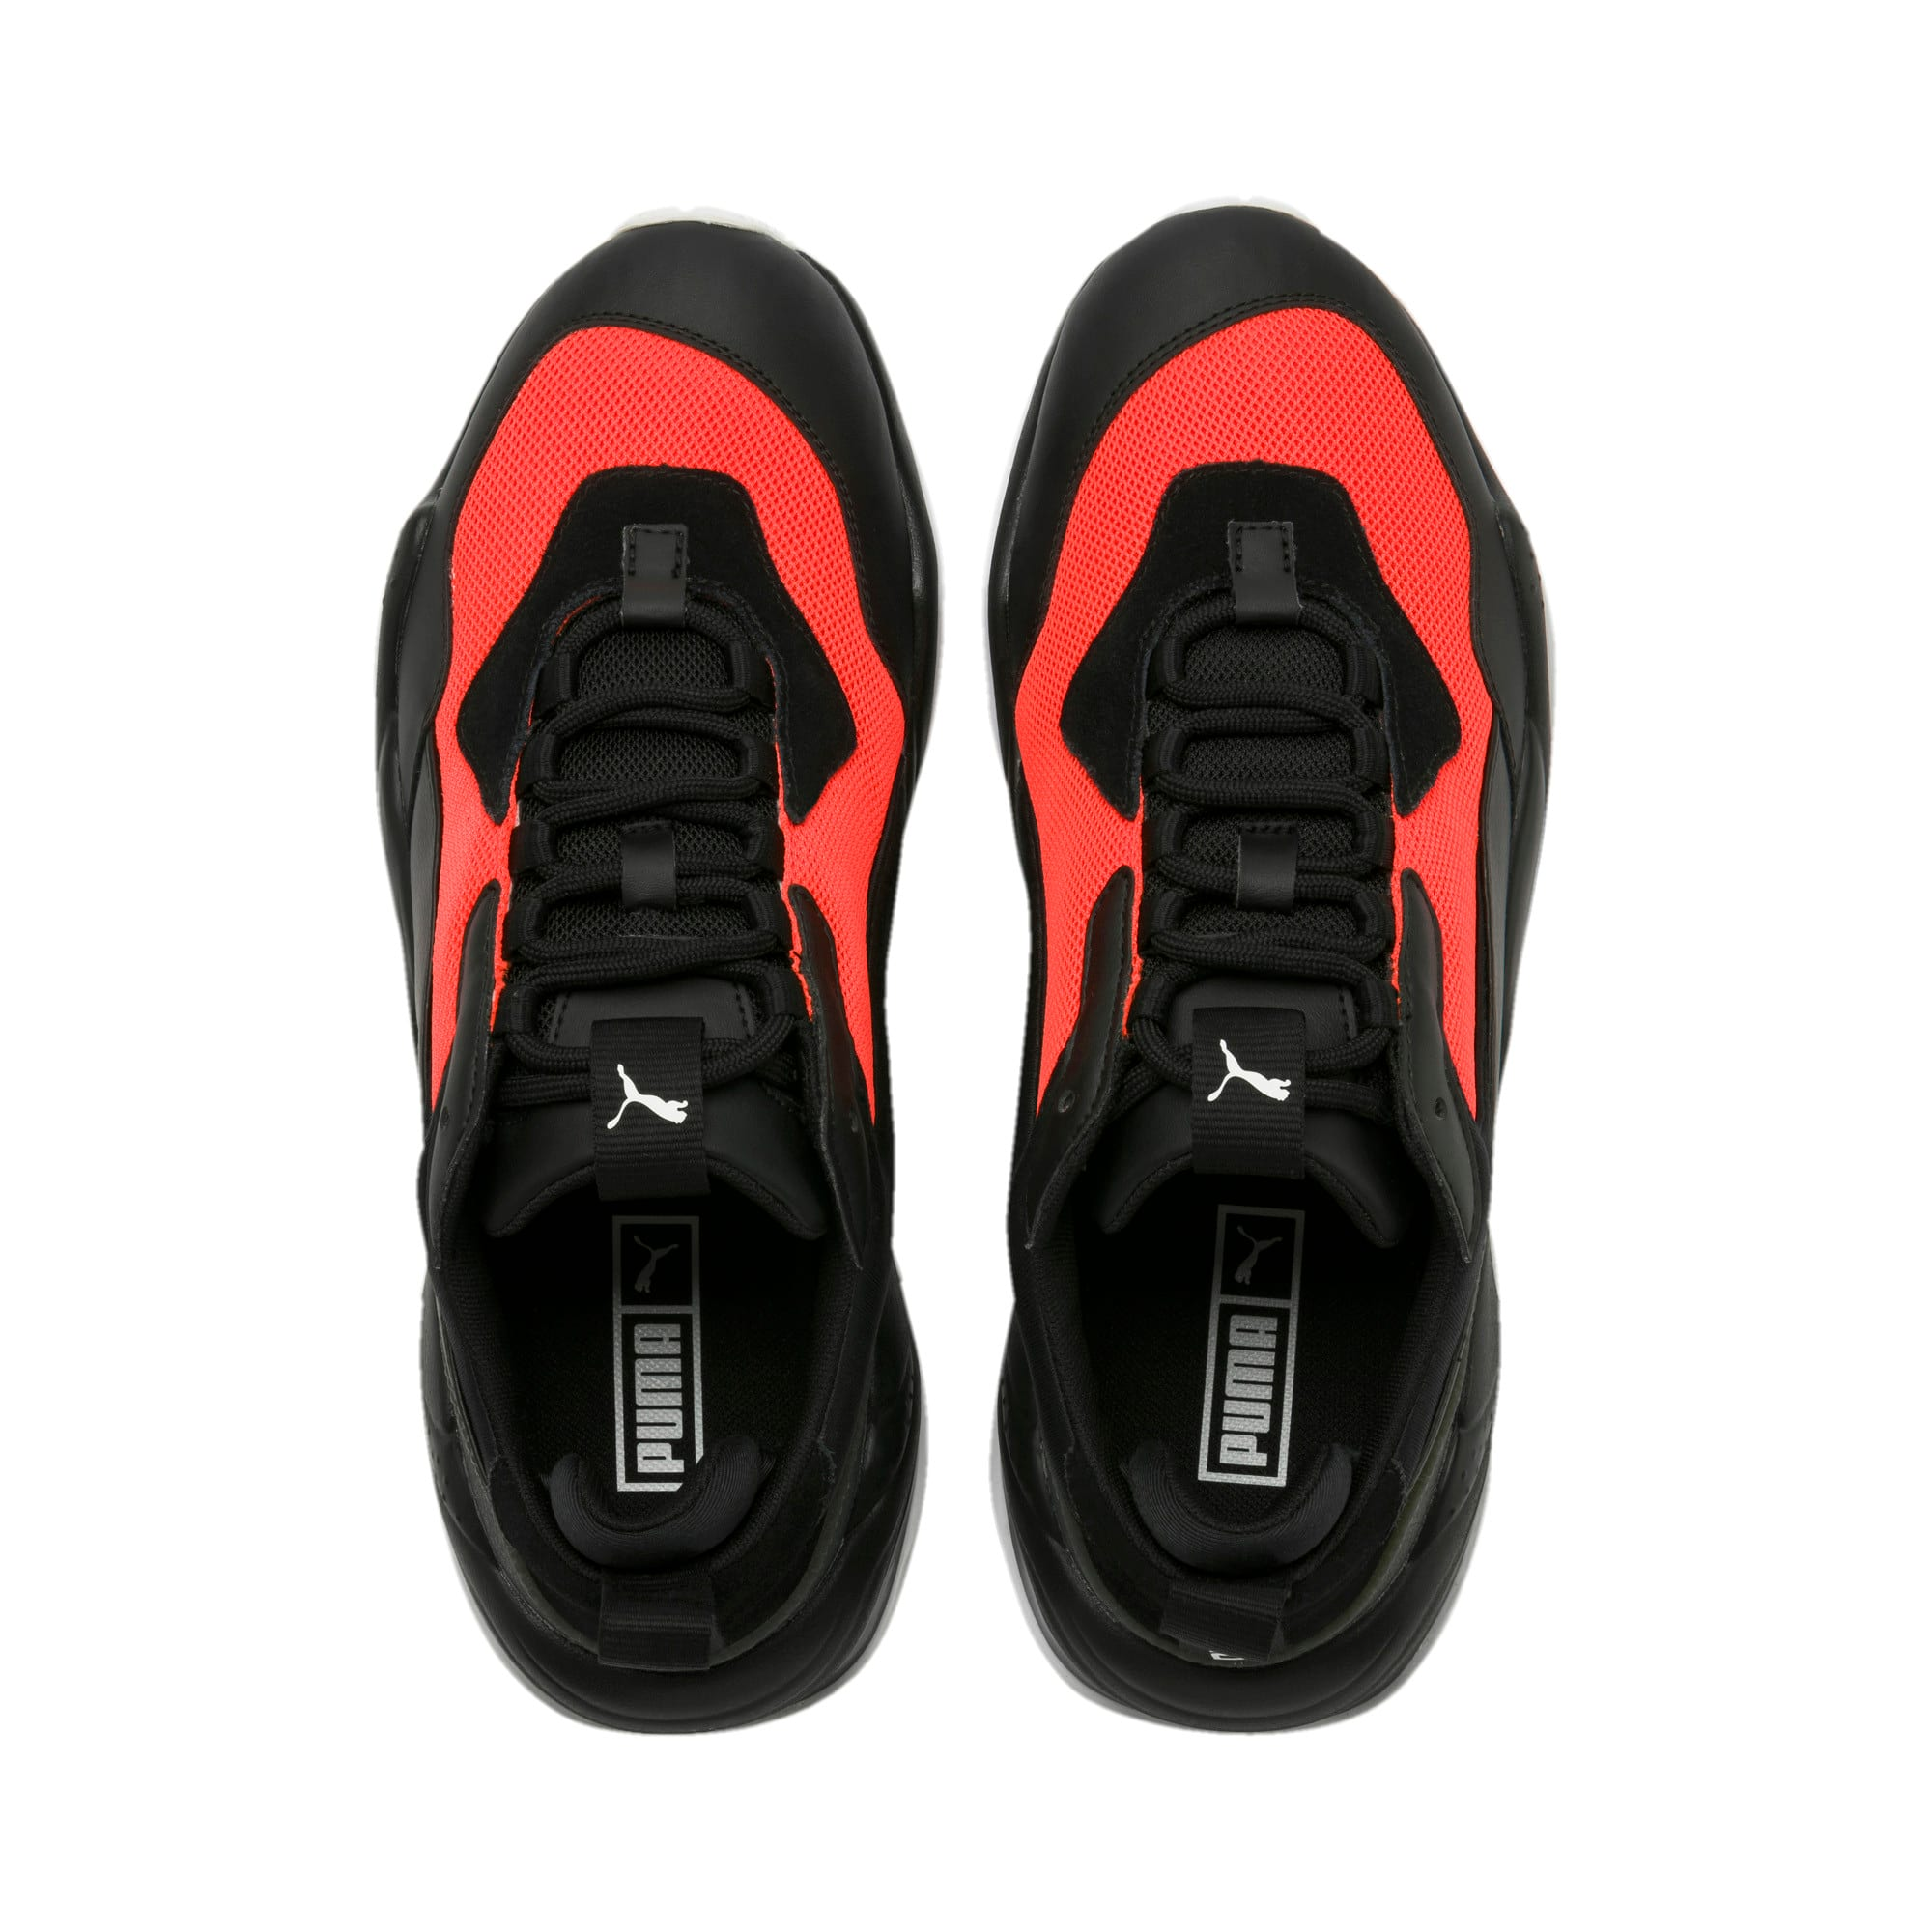 Thumbnail 7 of Thunder Fashion 2.0 Trainers, Puma Black-Nrgy Red, medium